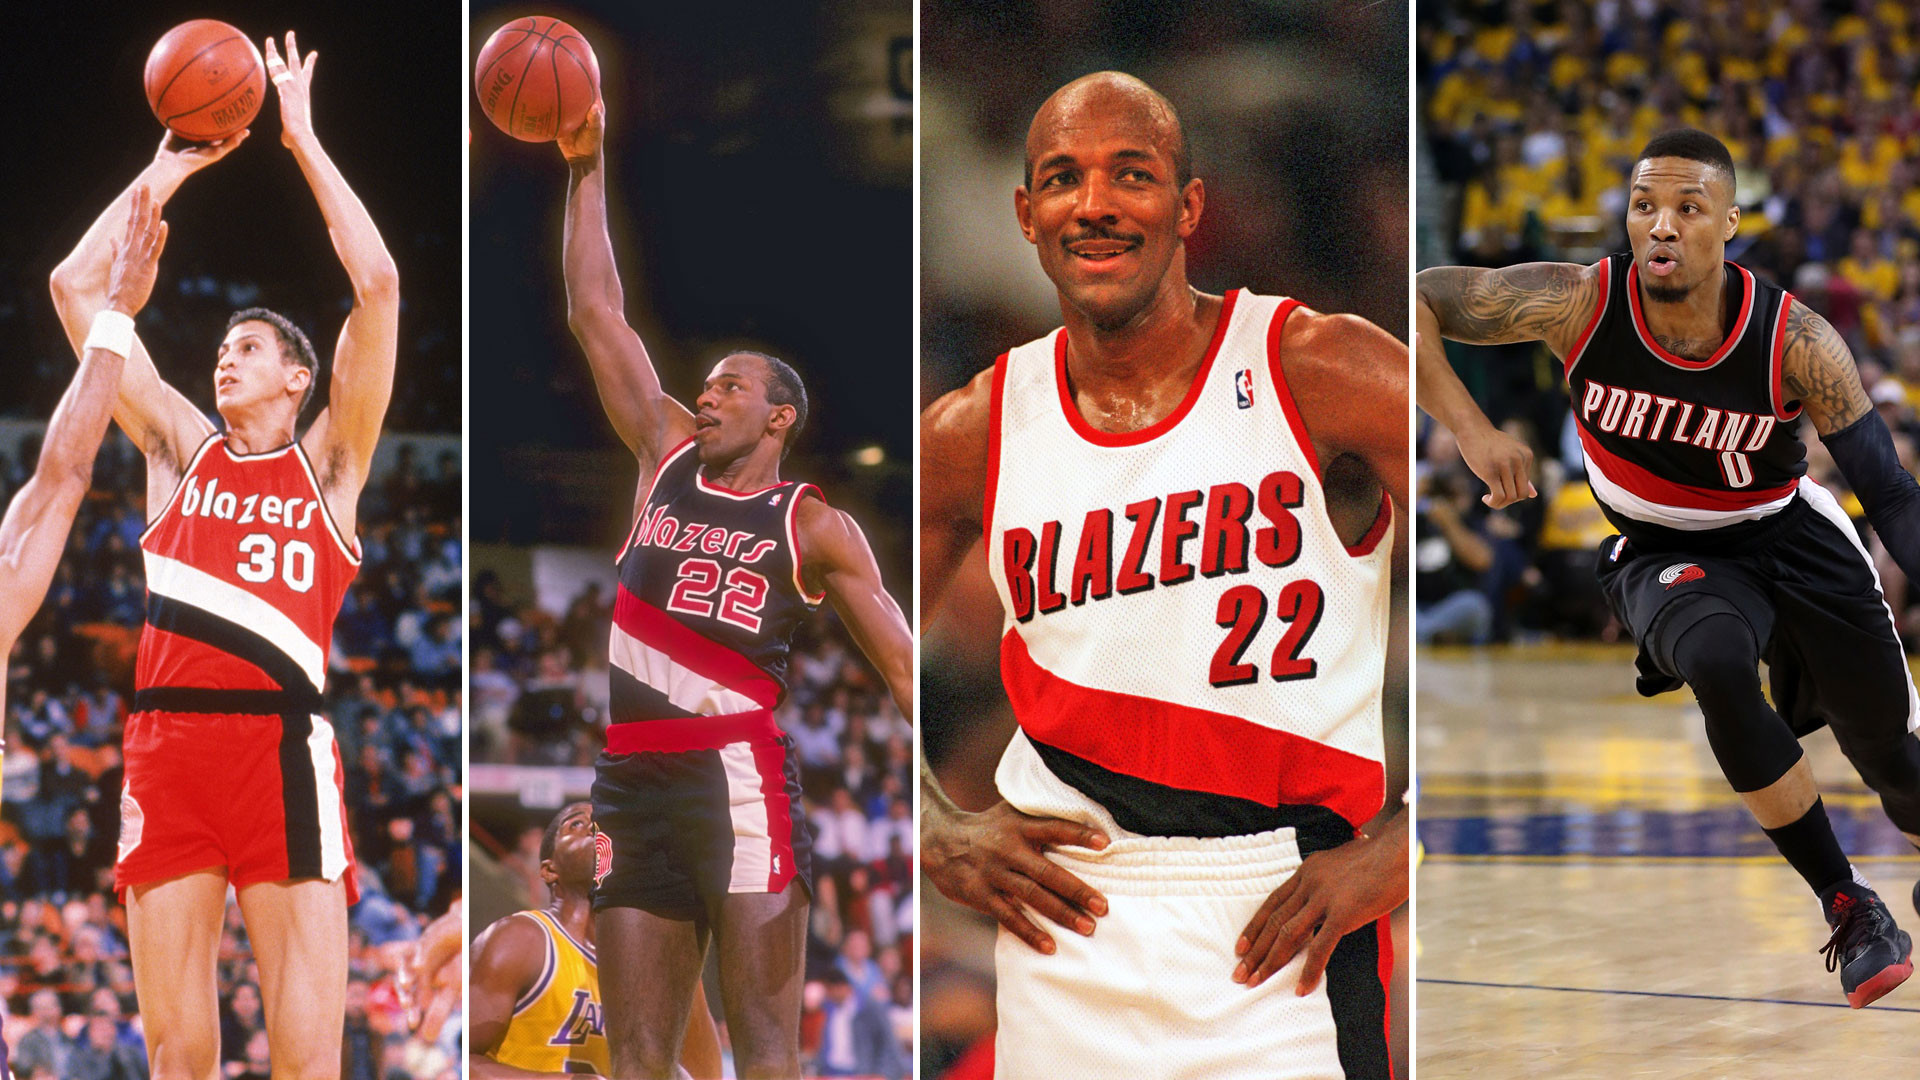 1920x1080 Portland Trail Blazers will get new uniforms and a new logo in 2017 | NBA |  Sporting News